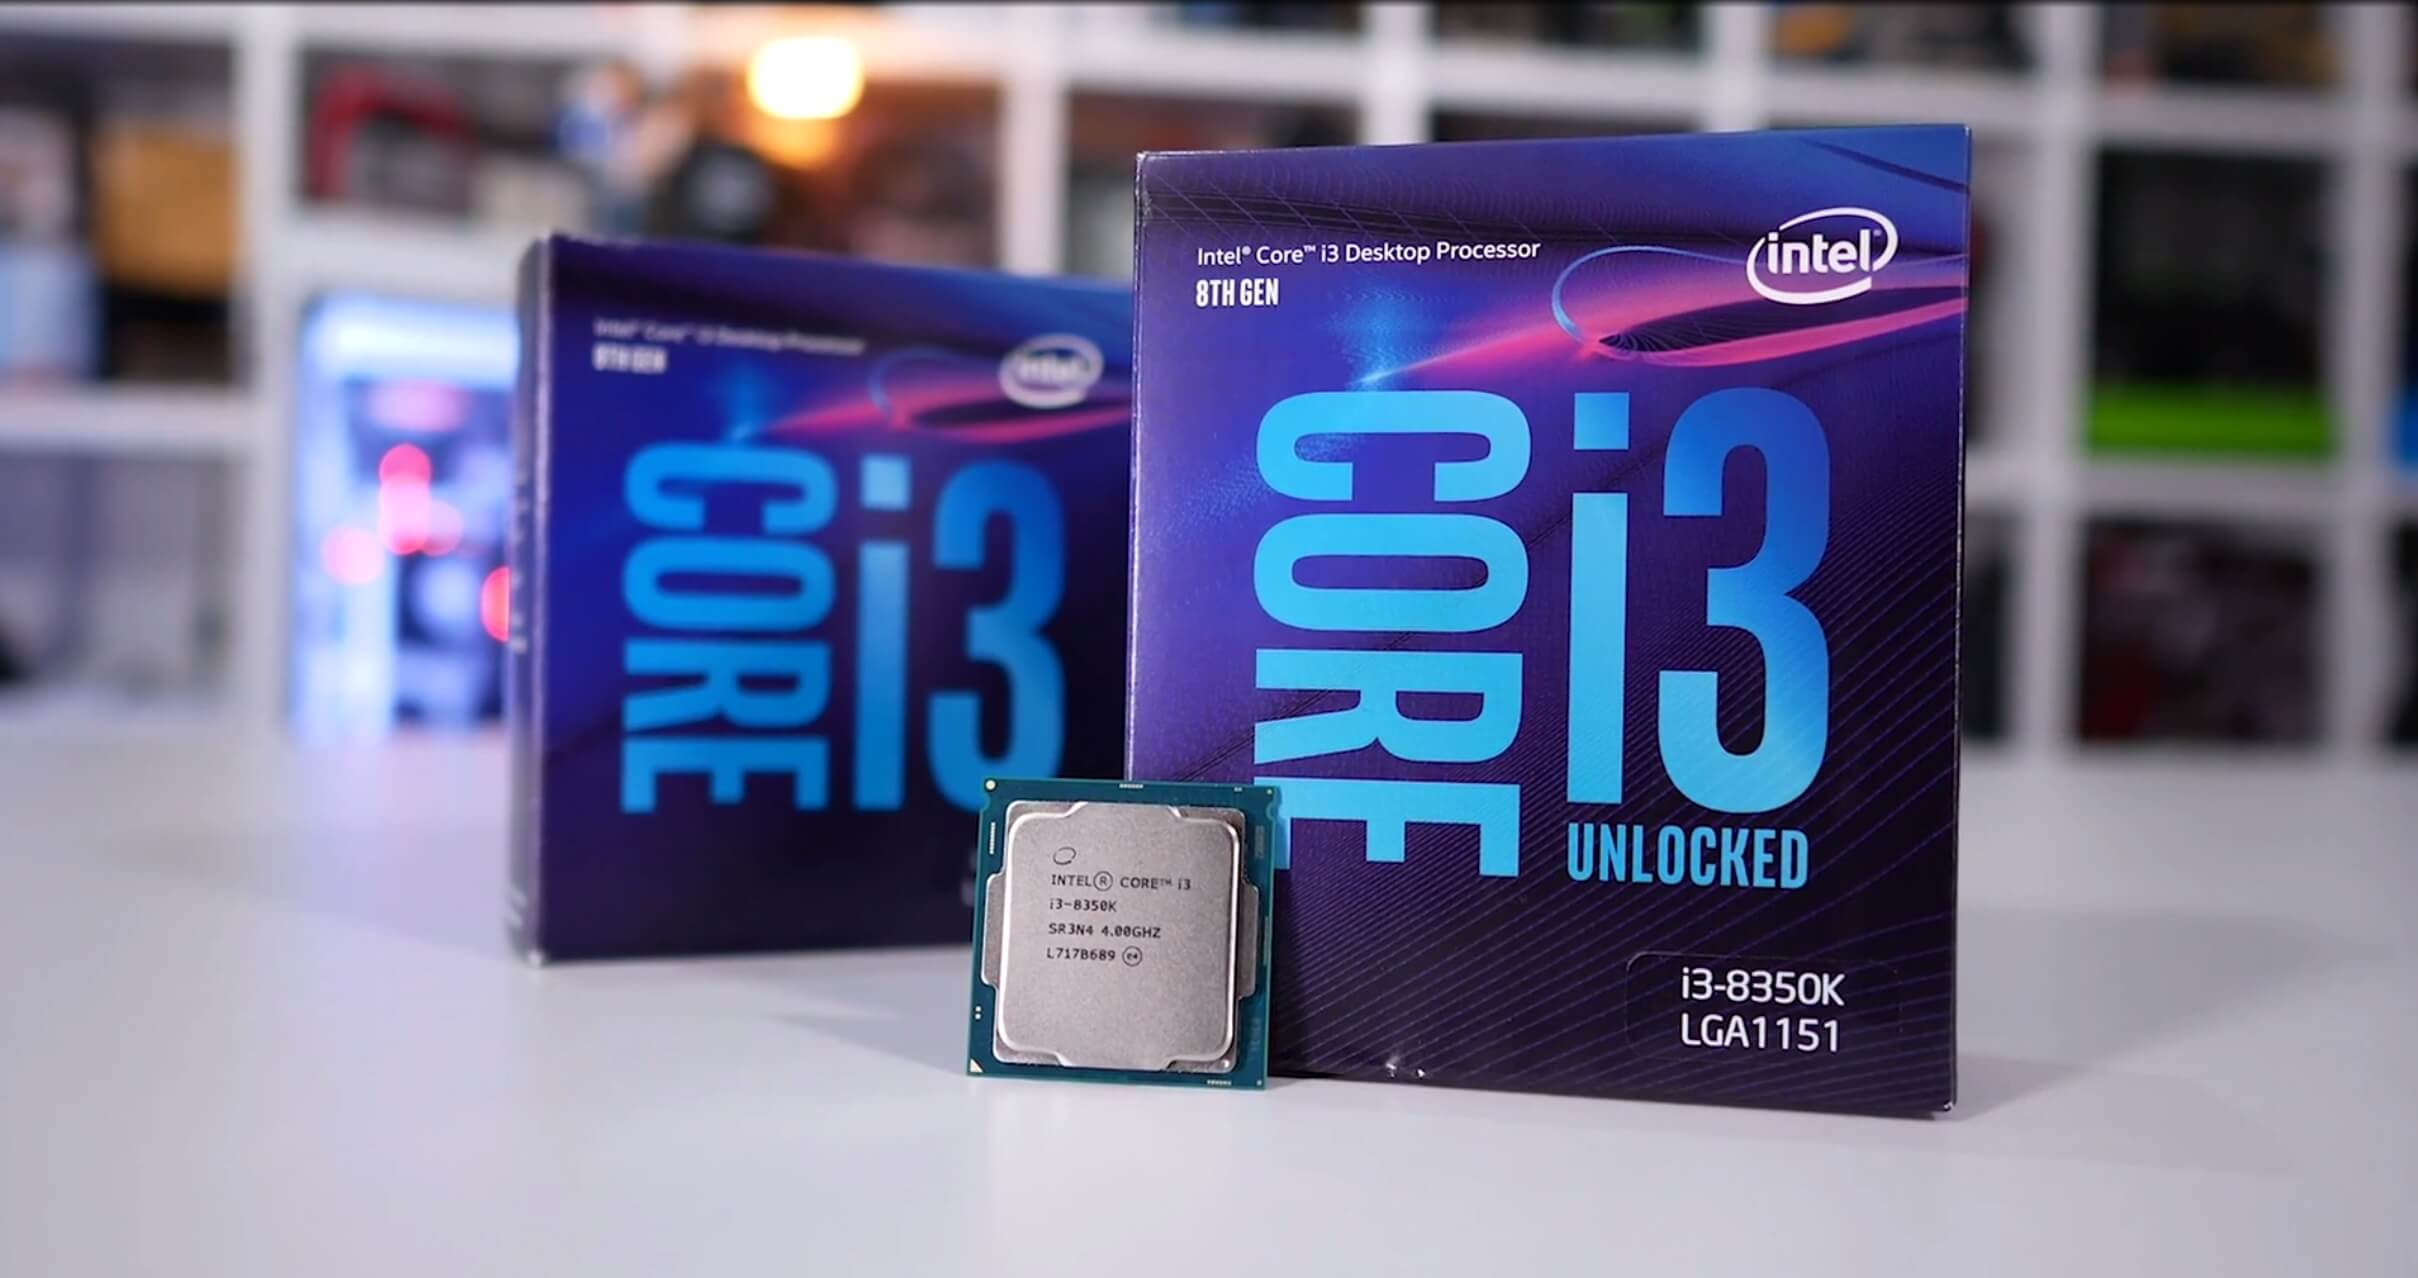 Intel Core i3-8100 and Core i3-8350K